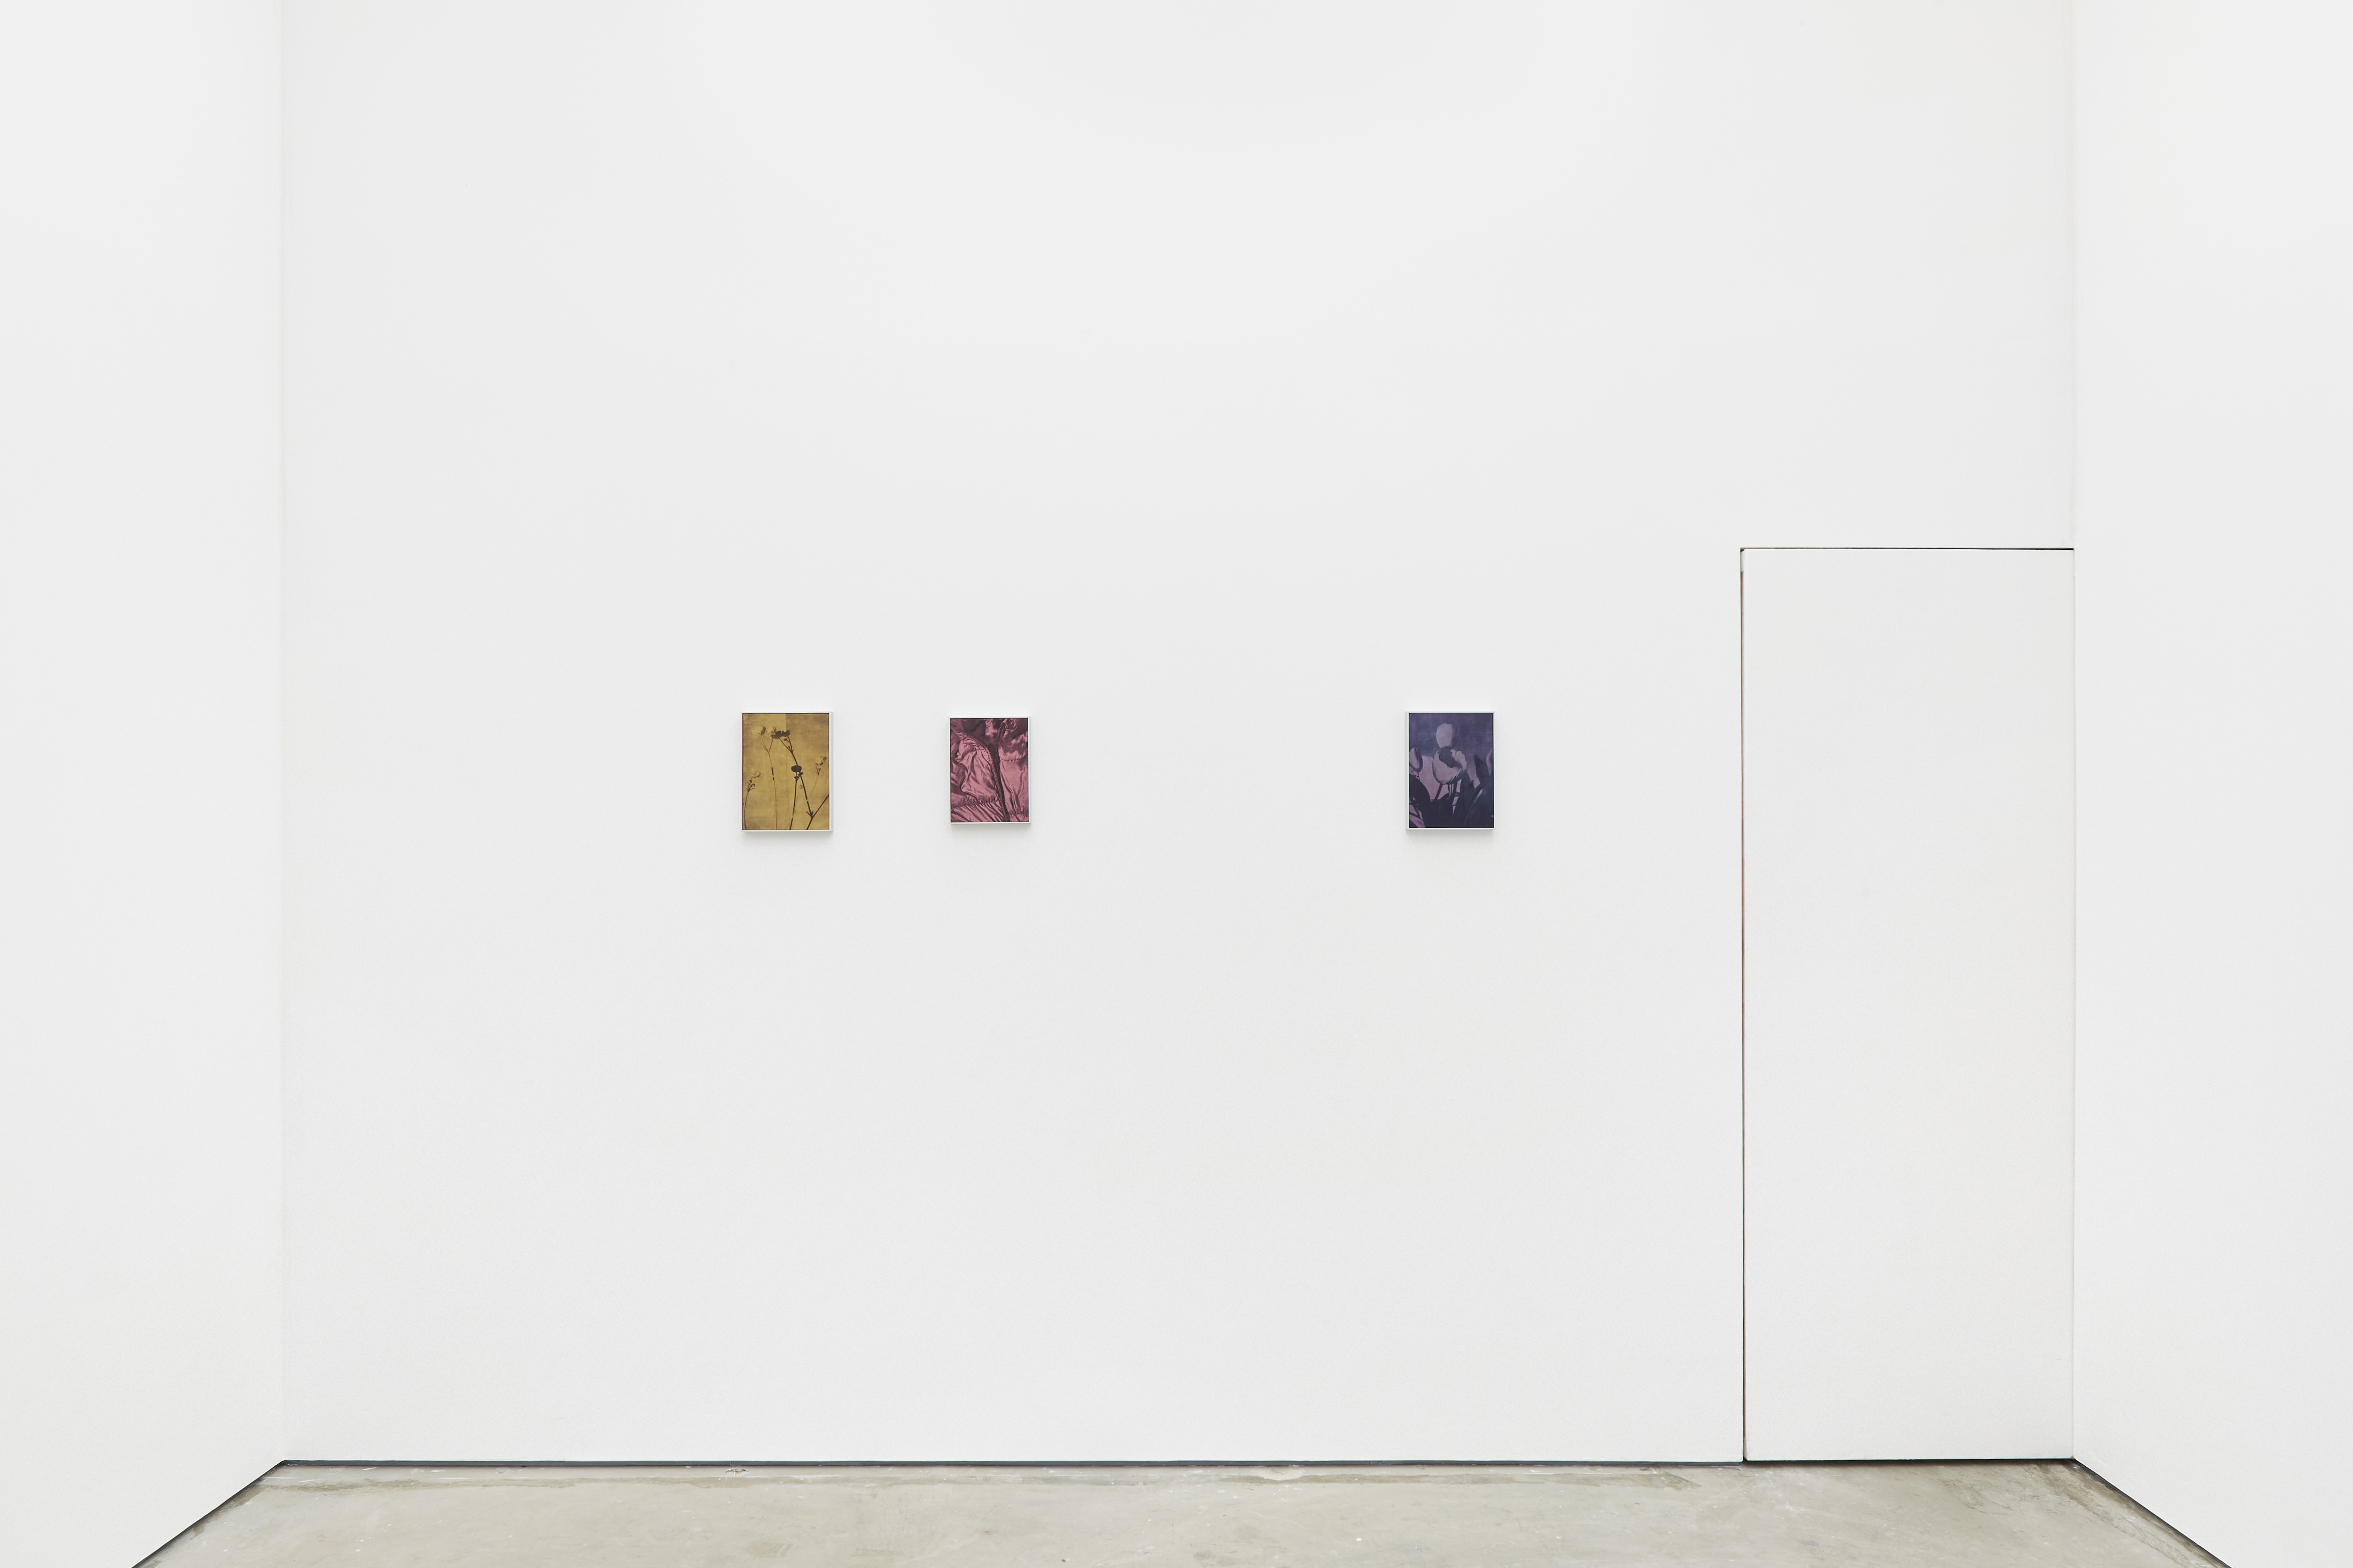 Installation View, Bright Sleep, 2021, South Parade x Painters Painting Paintings, London, Courtesy of the artist and the gallery.